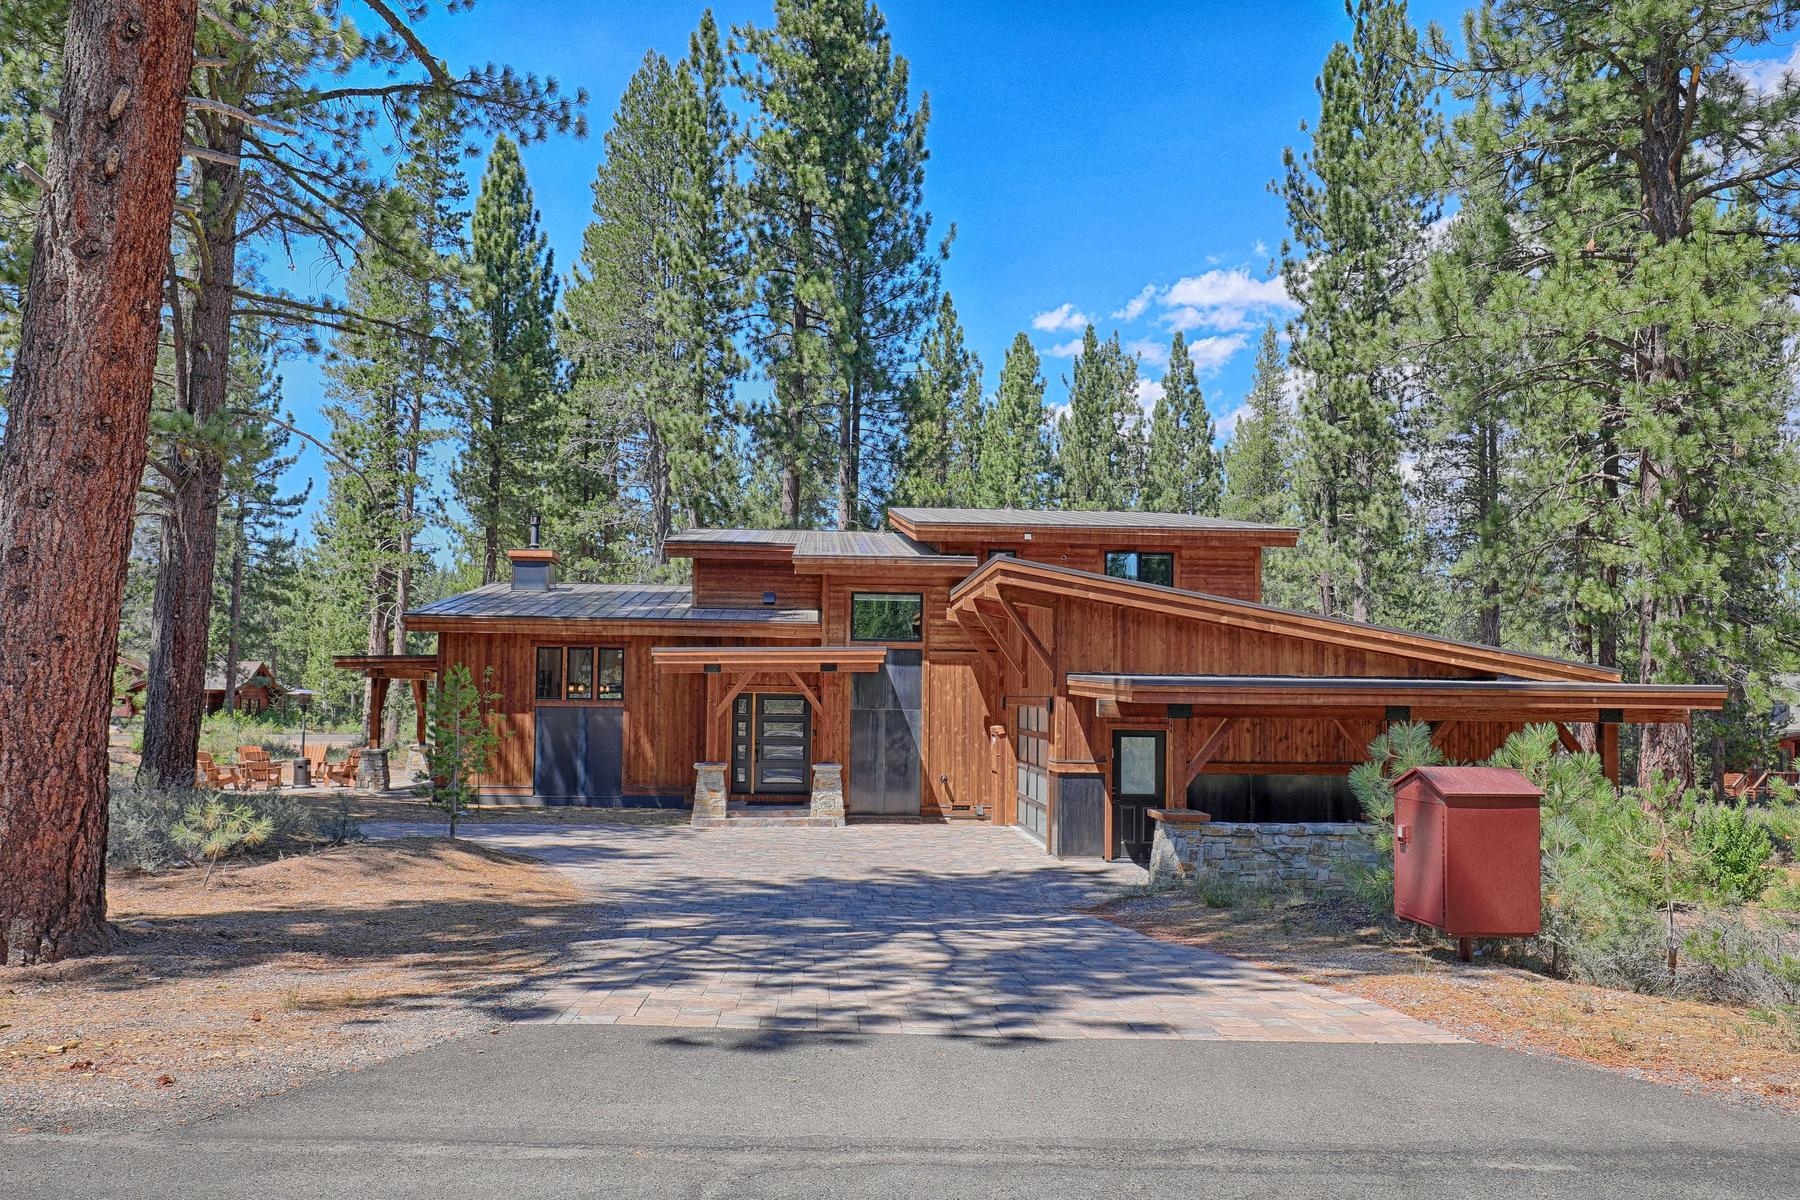 Additional photo for property listing at 11090 Henness Road, Truckee, Ca 96161 11090 Henness Road 特拉基, 加利福尼亚州 96161 美国